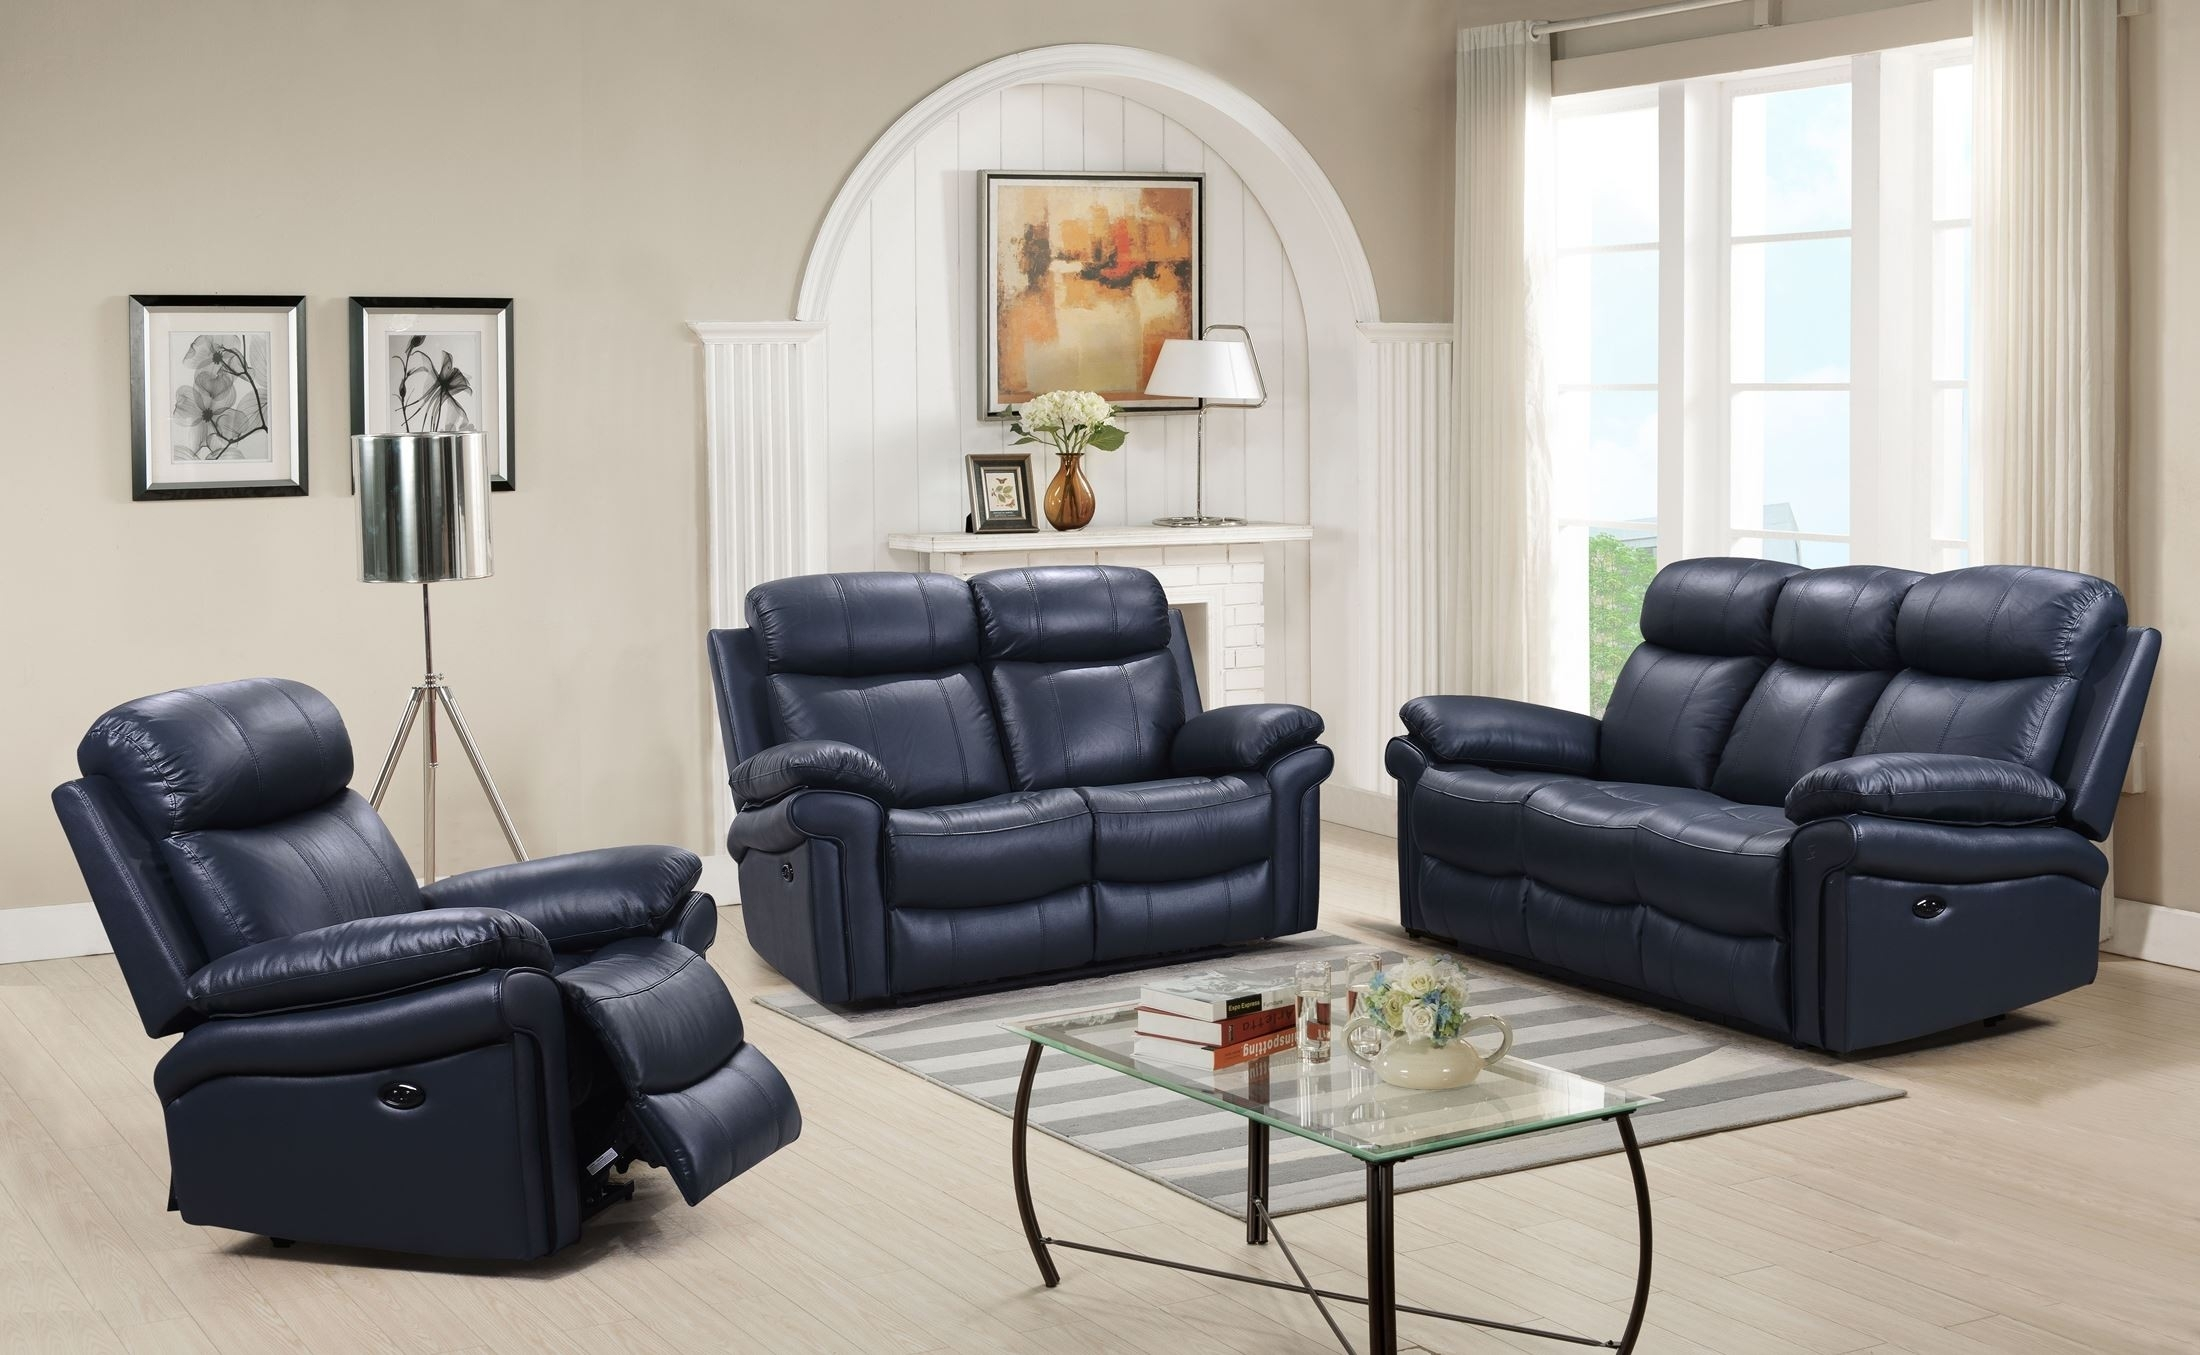 Leather Italia Usa Shae Joplin Blue Leather Power Reclining Chair intended for Travis Dk Grey Leather 6 Piece Power Reclining Sectionals With Power Headrest & Usb (Image 11 of 30)